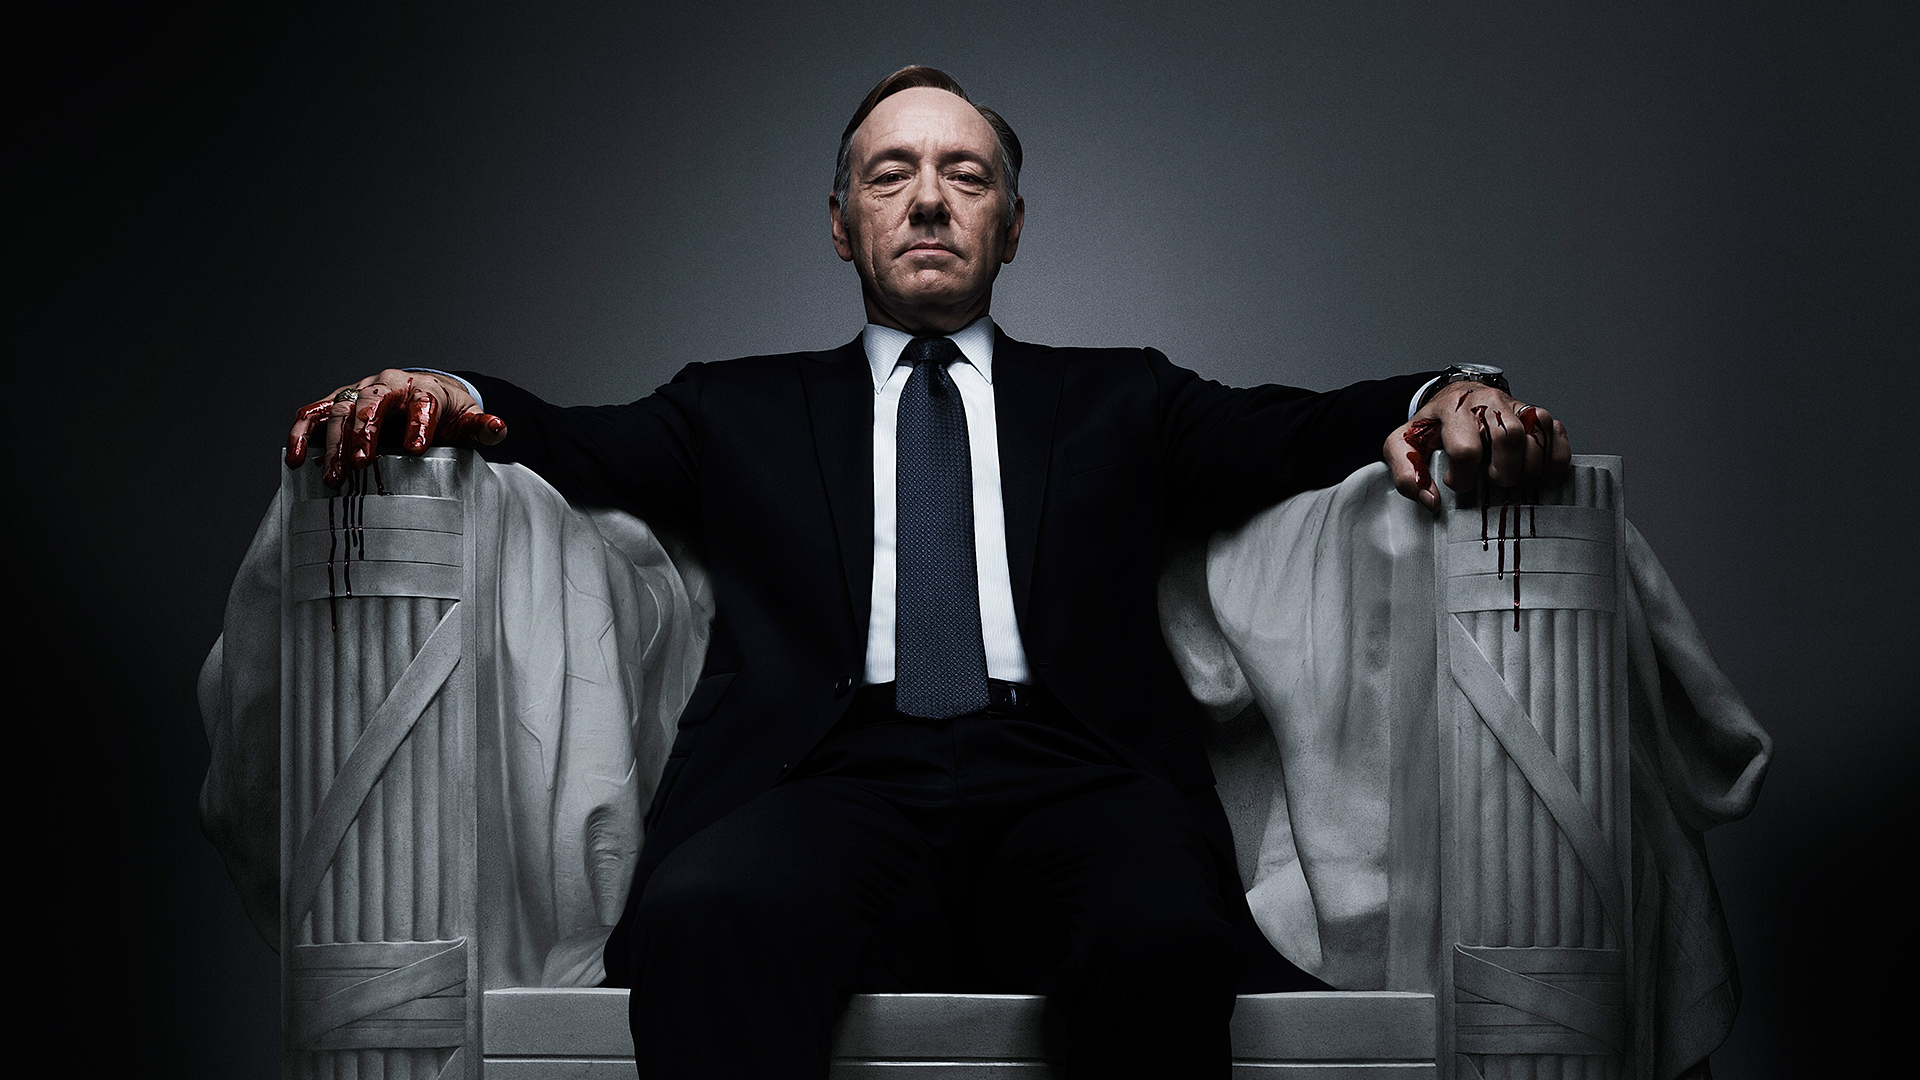 Trailer - House of Cards Season 4